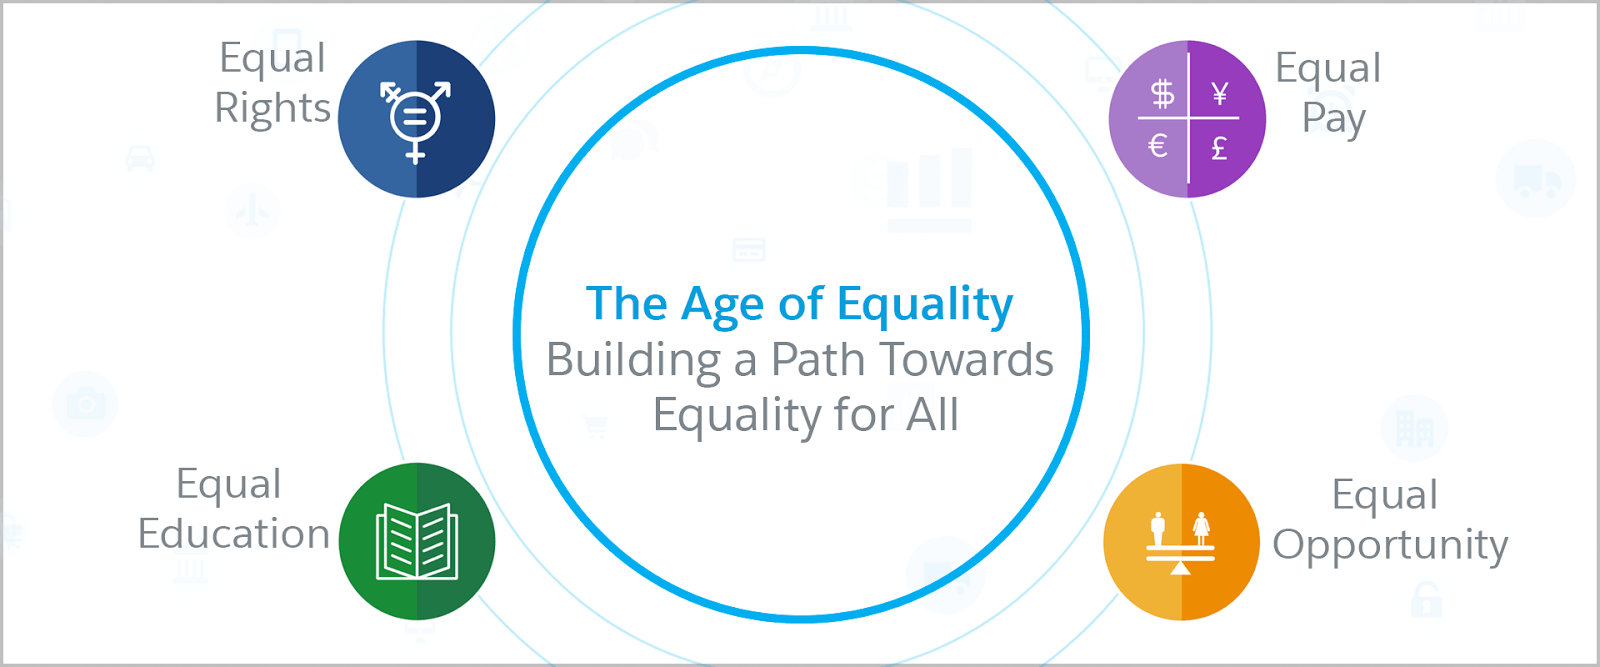 The Age of Equality means building a path towards Equality for all. We do that by focusing on equal rights, equal pay, equal opportunity, and equal education.